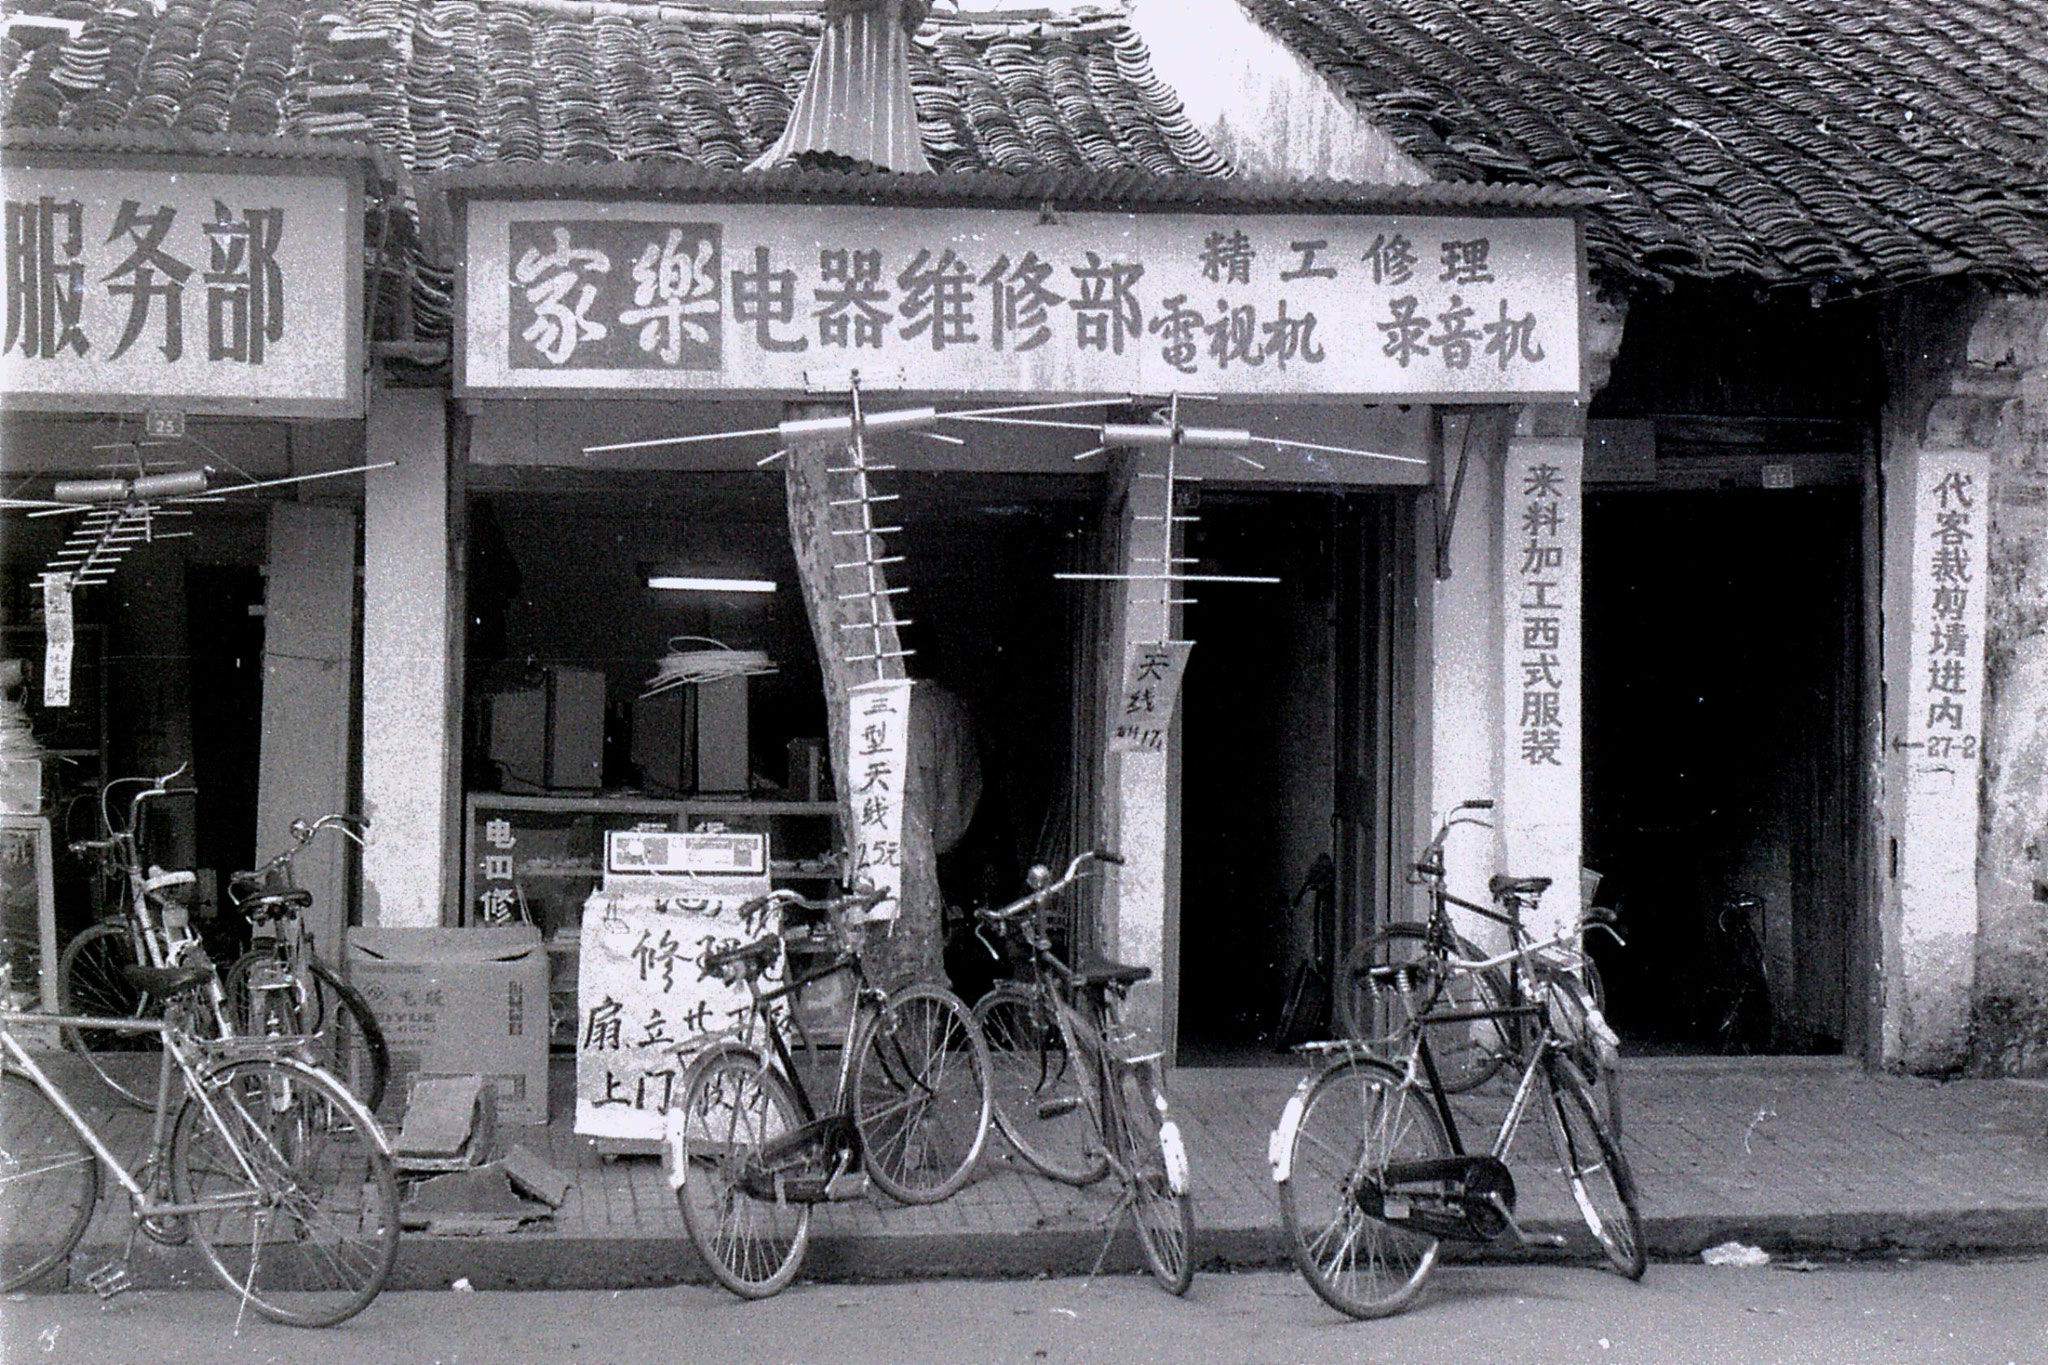 27/6/1989: 31: Shaoxing aerial shop